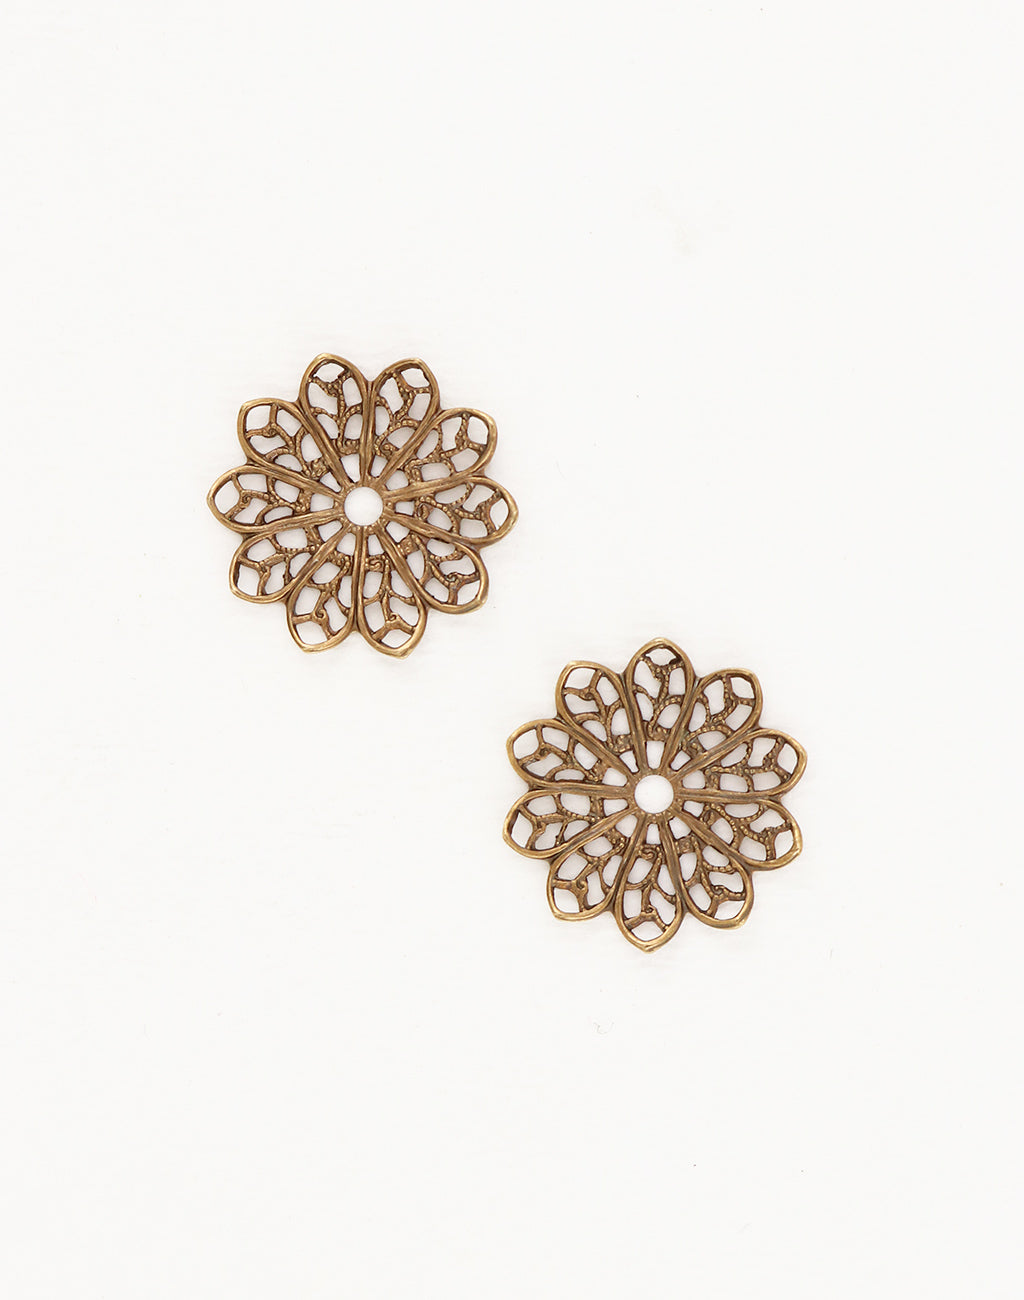 Filigree Flower, 21mm, (2pcs)